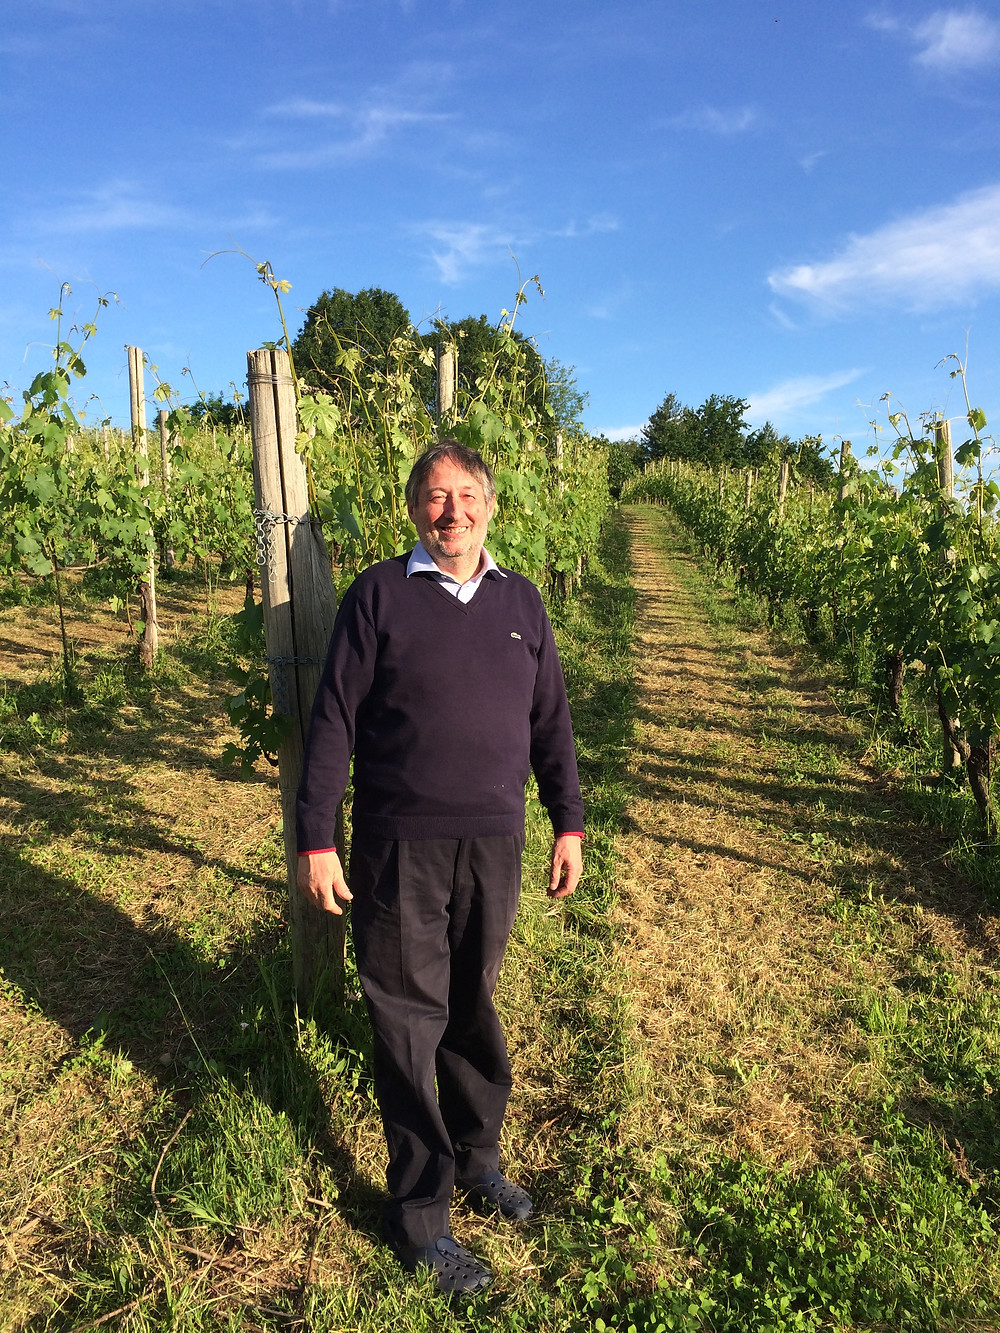 Alberto Arlunno in the Cantalupa vineyards